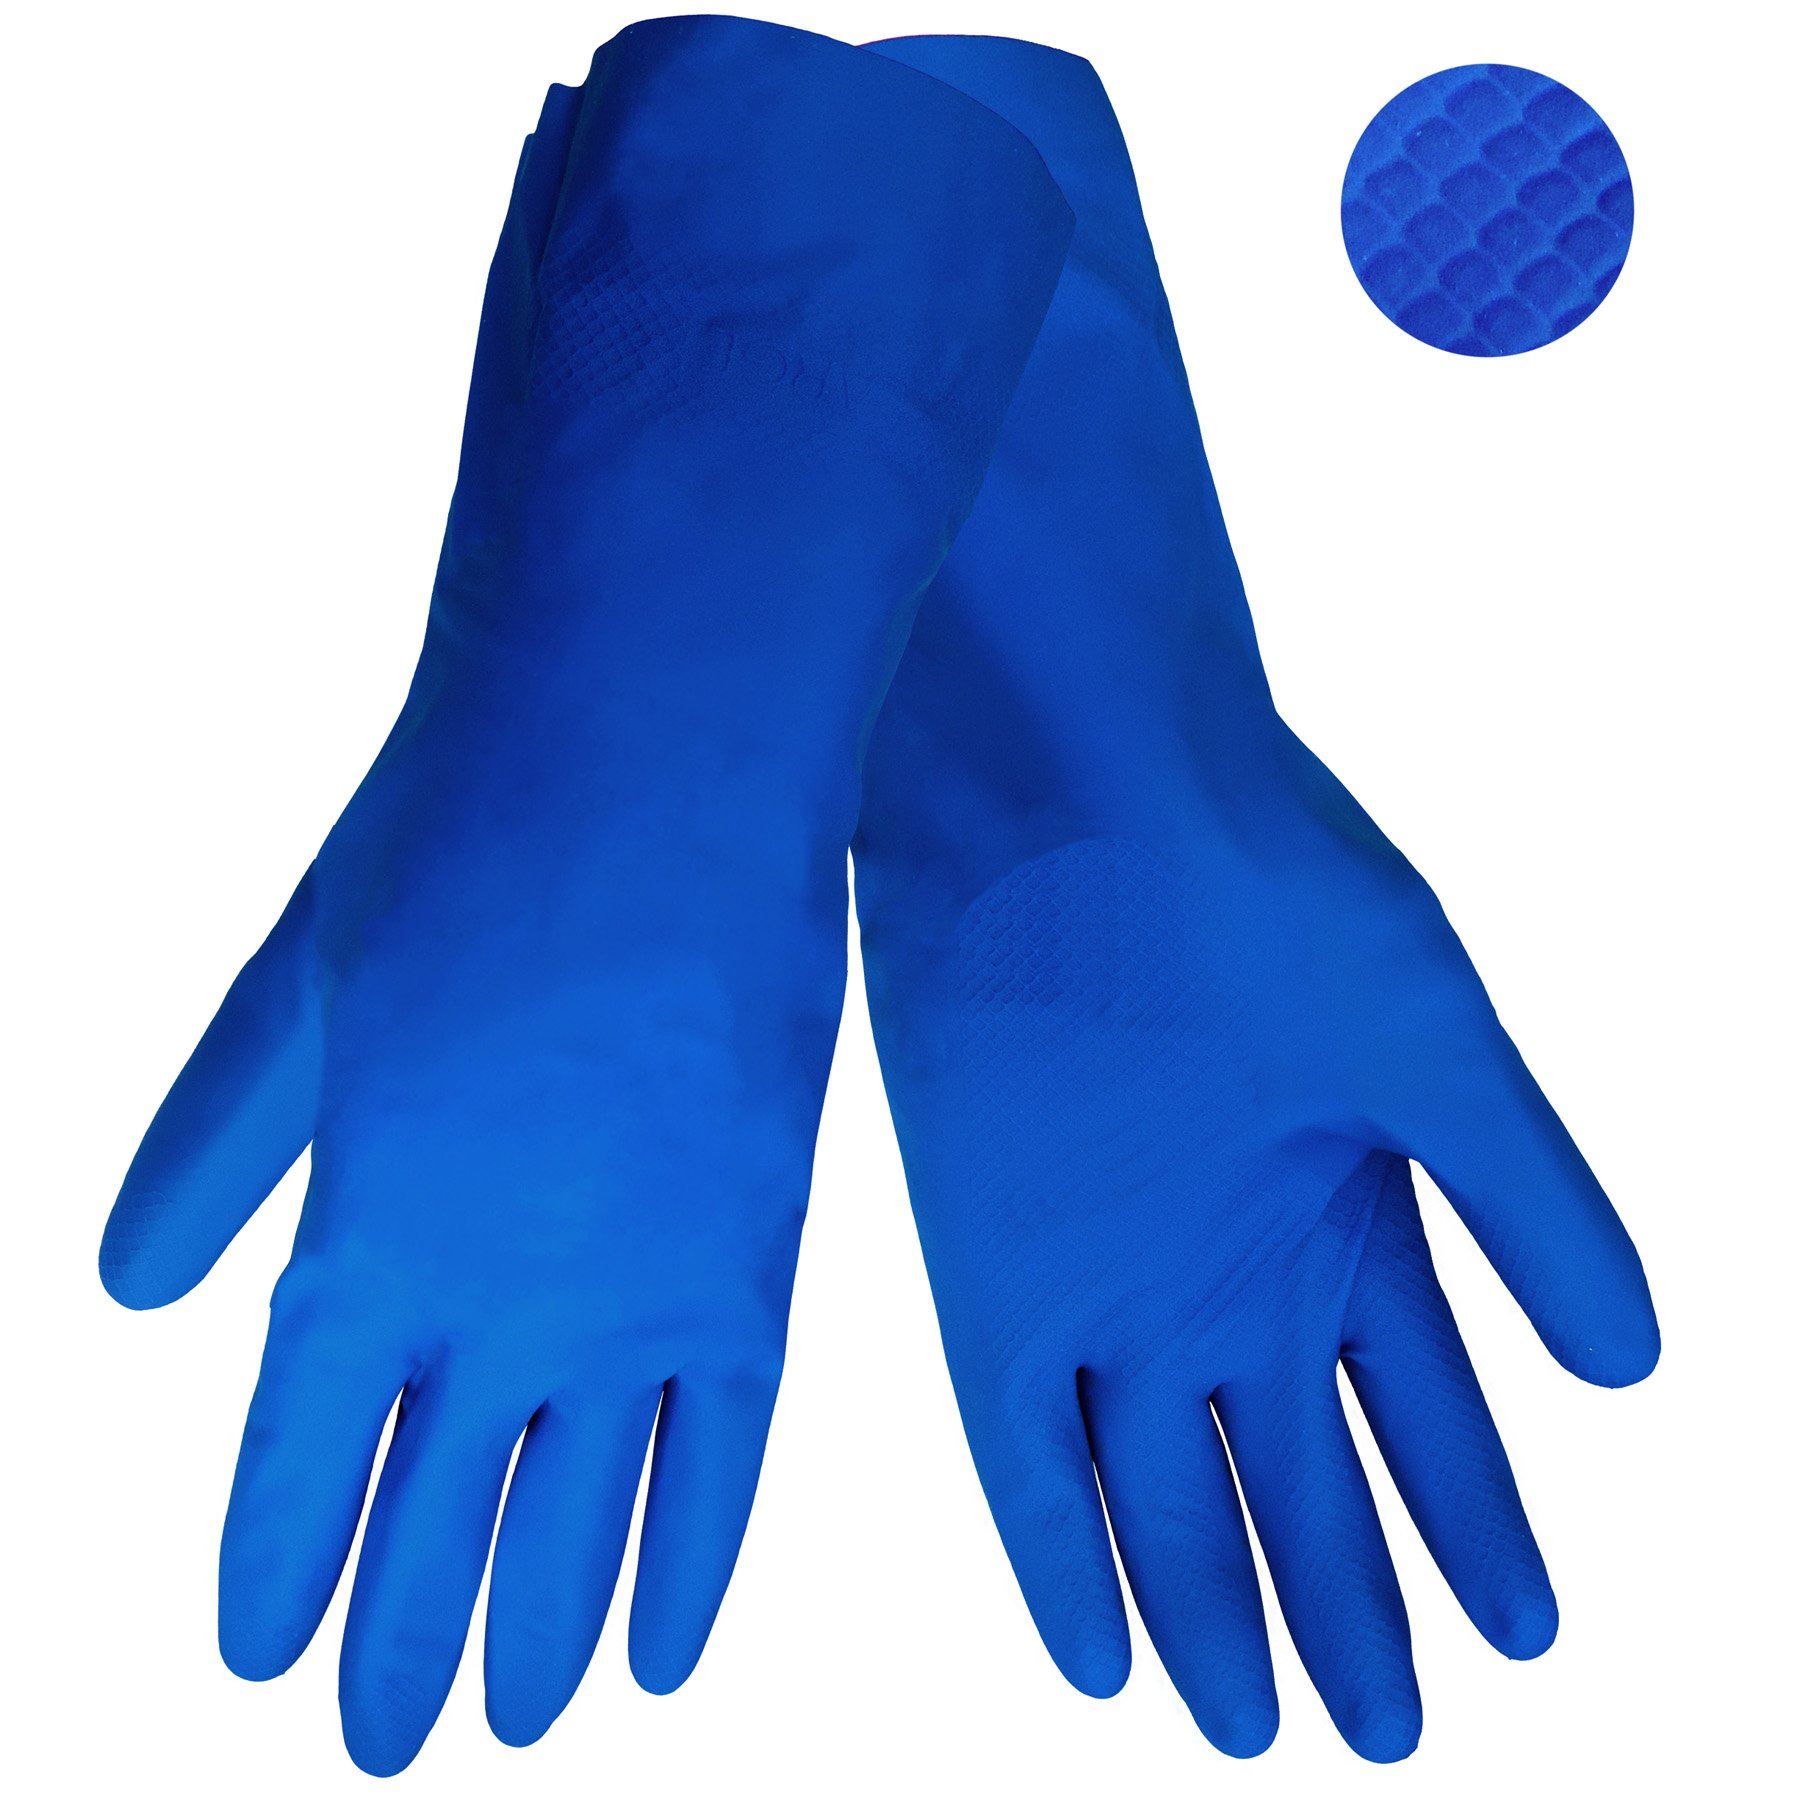 Global Glove 150 Unlined Rubber Canners Glove with Straight Cuff, Chemical Resistant, 17 mil Thick, Medium, Blue (Case of 144)